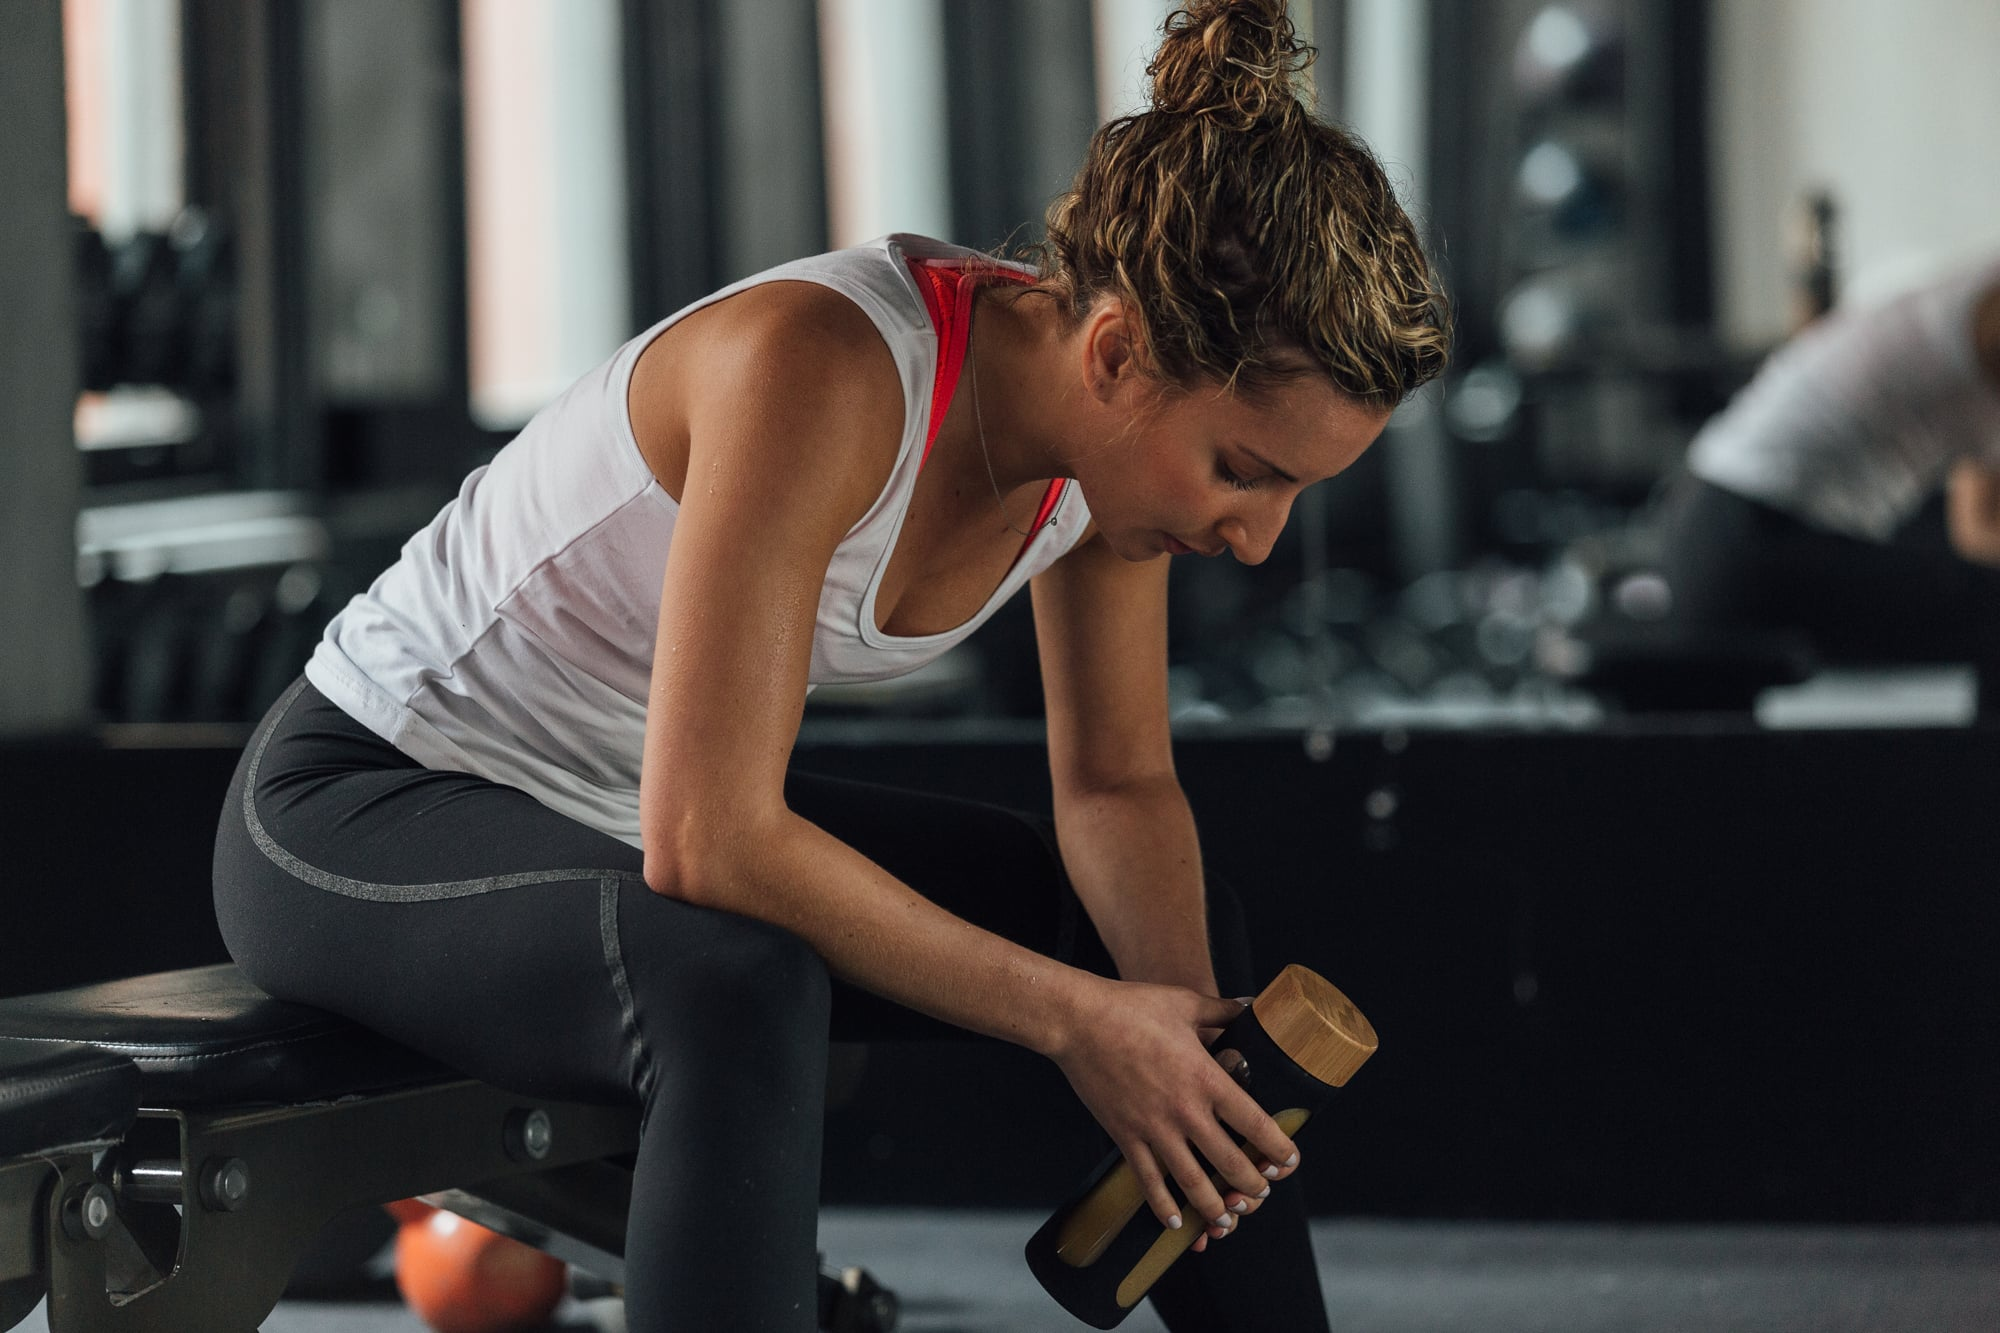 This Is What Gave Me the Energy to Make the Most of My Workouts — and Feel the Results After